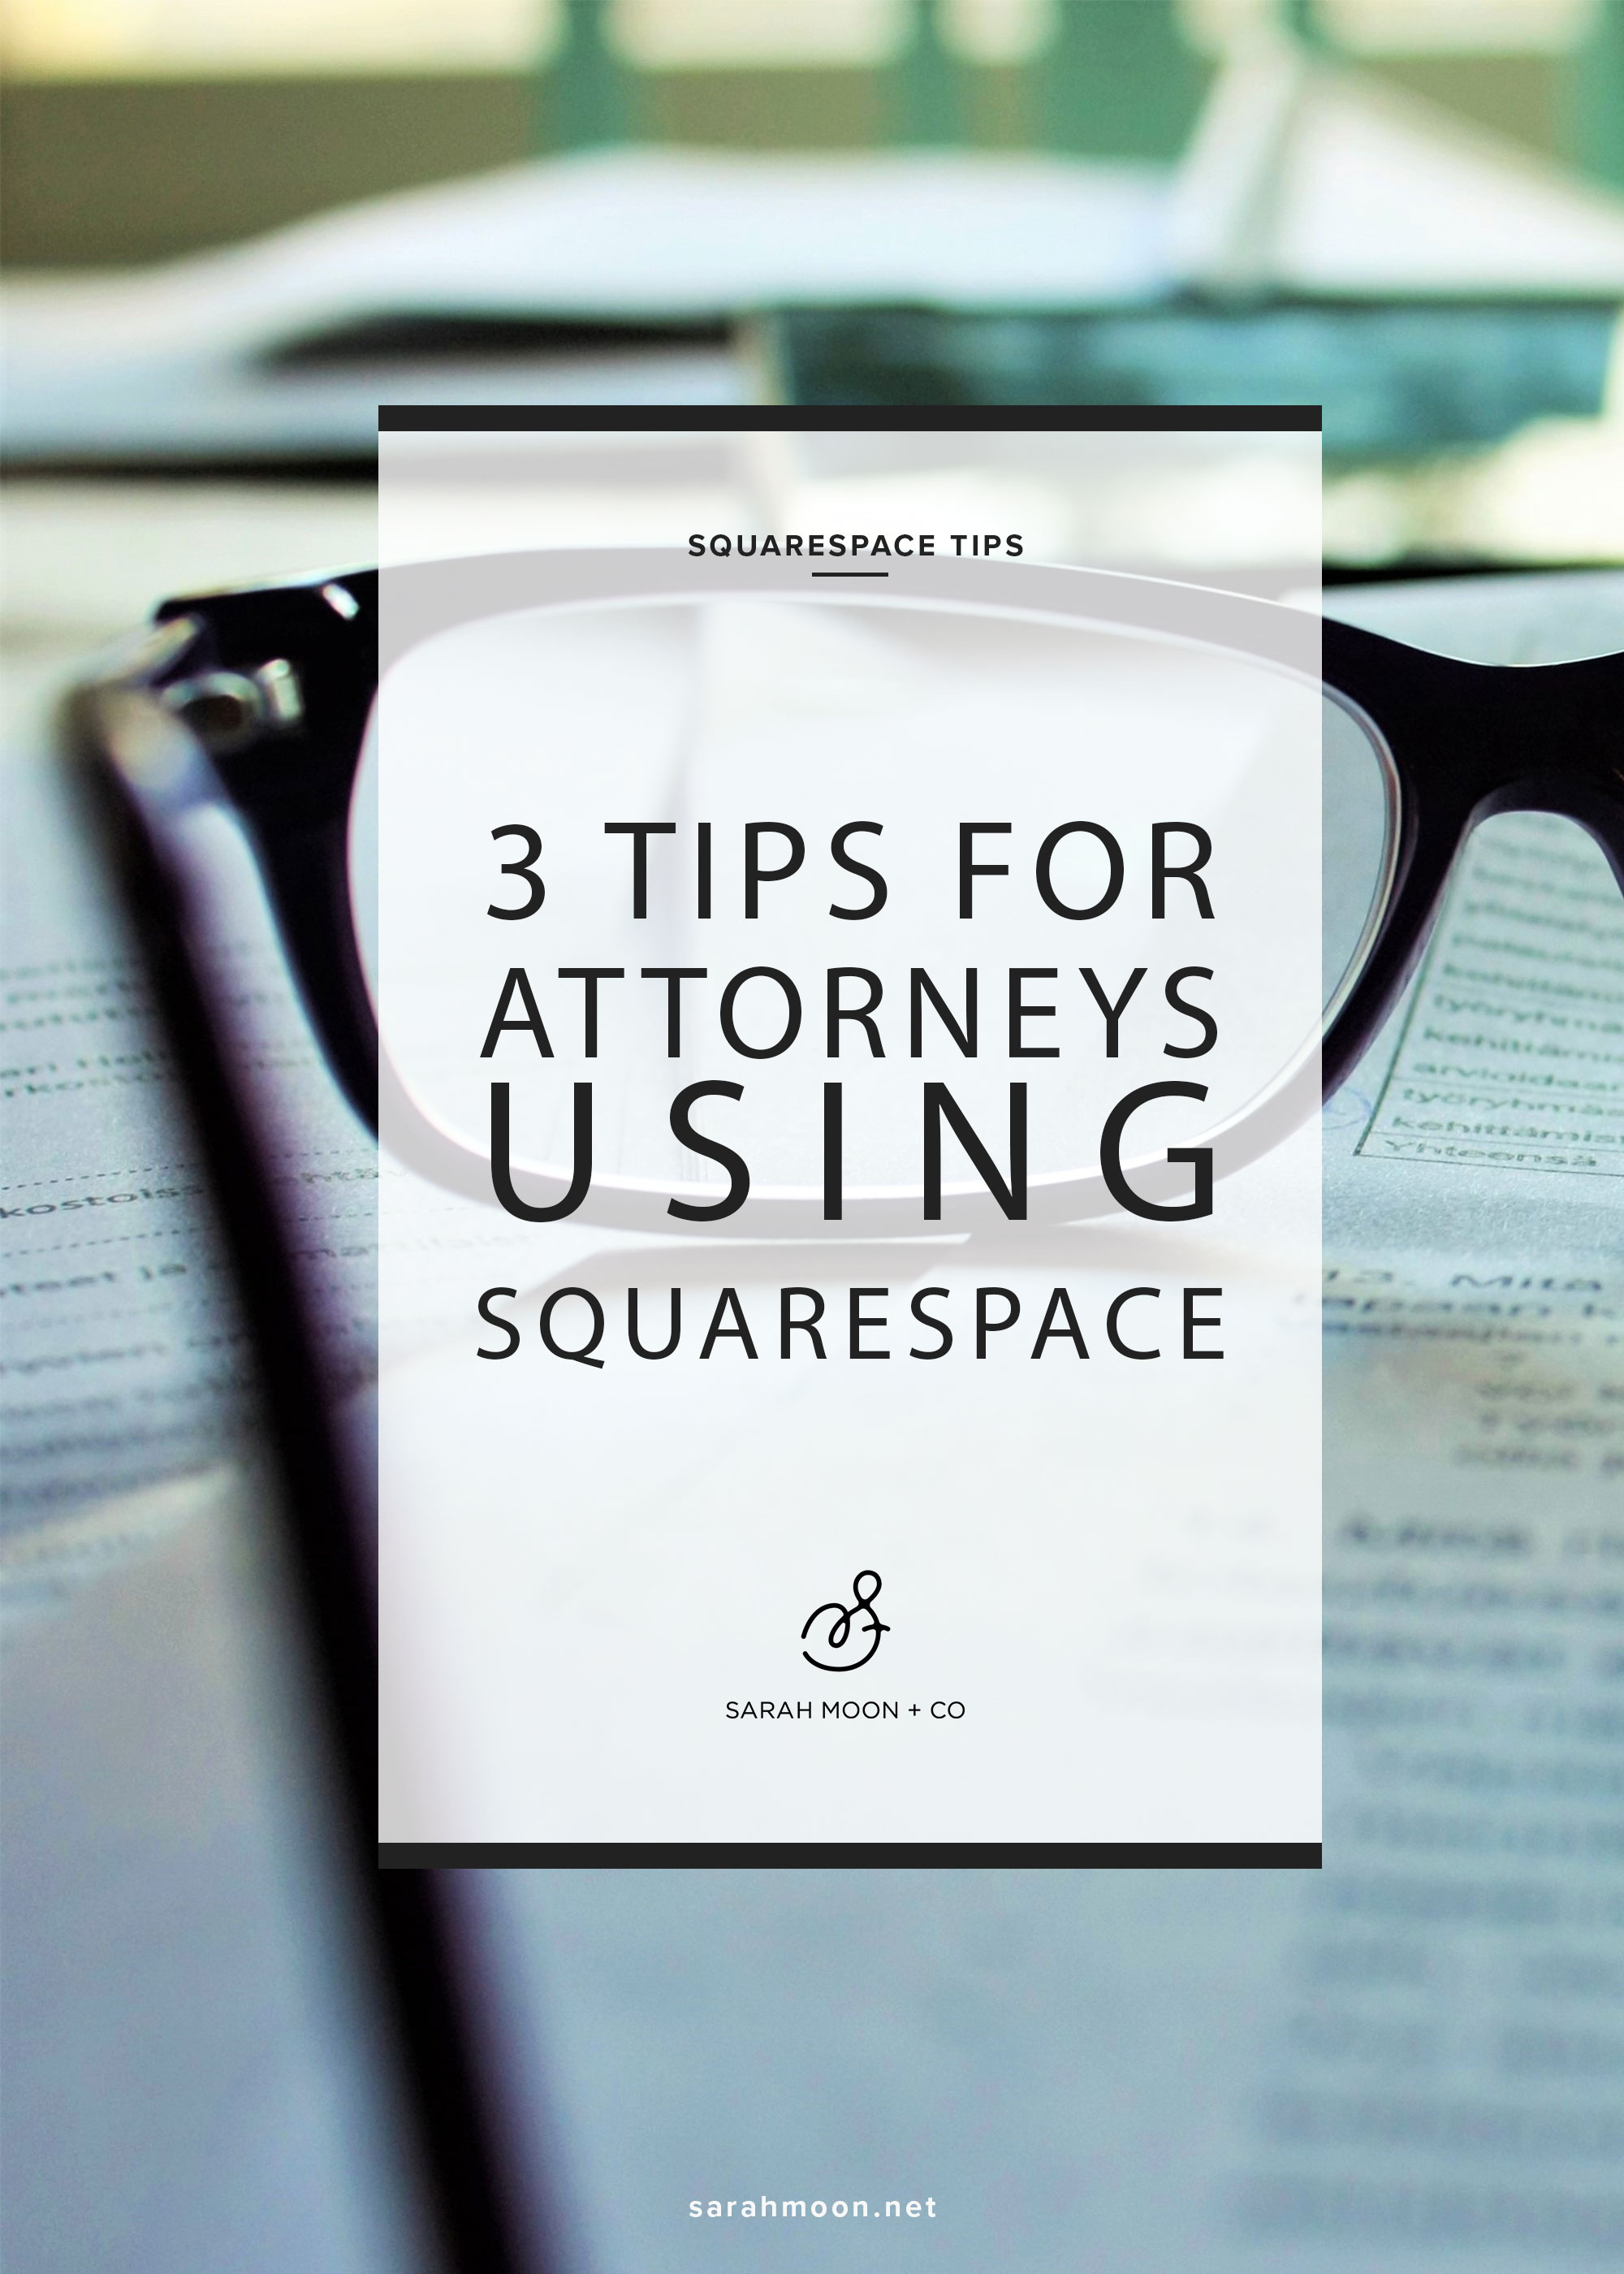 3 Tips for Attorneys Using Squarespace